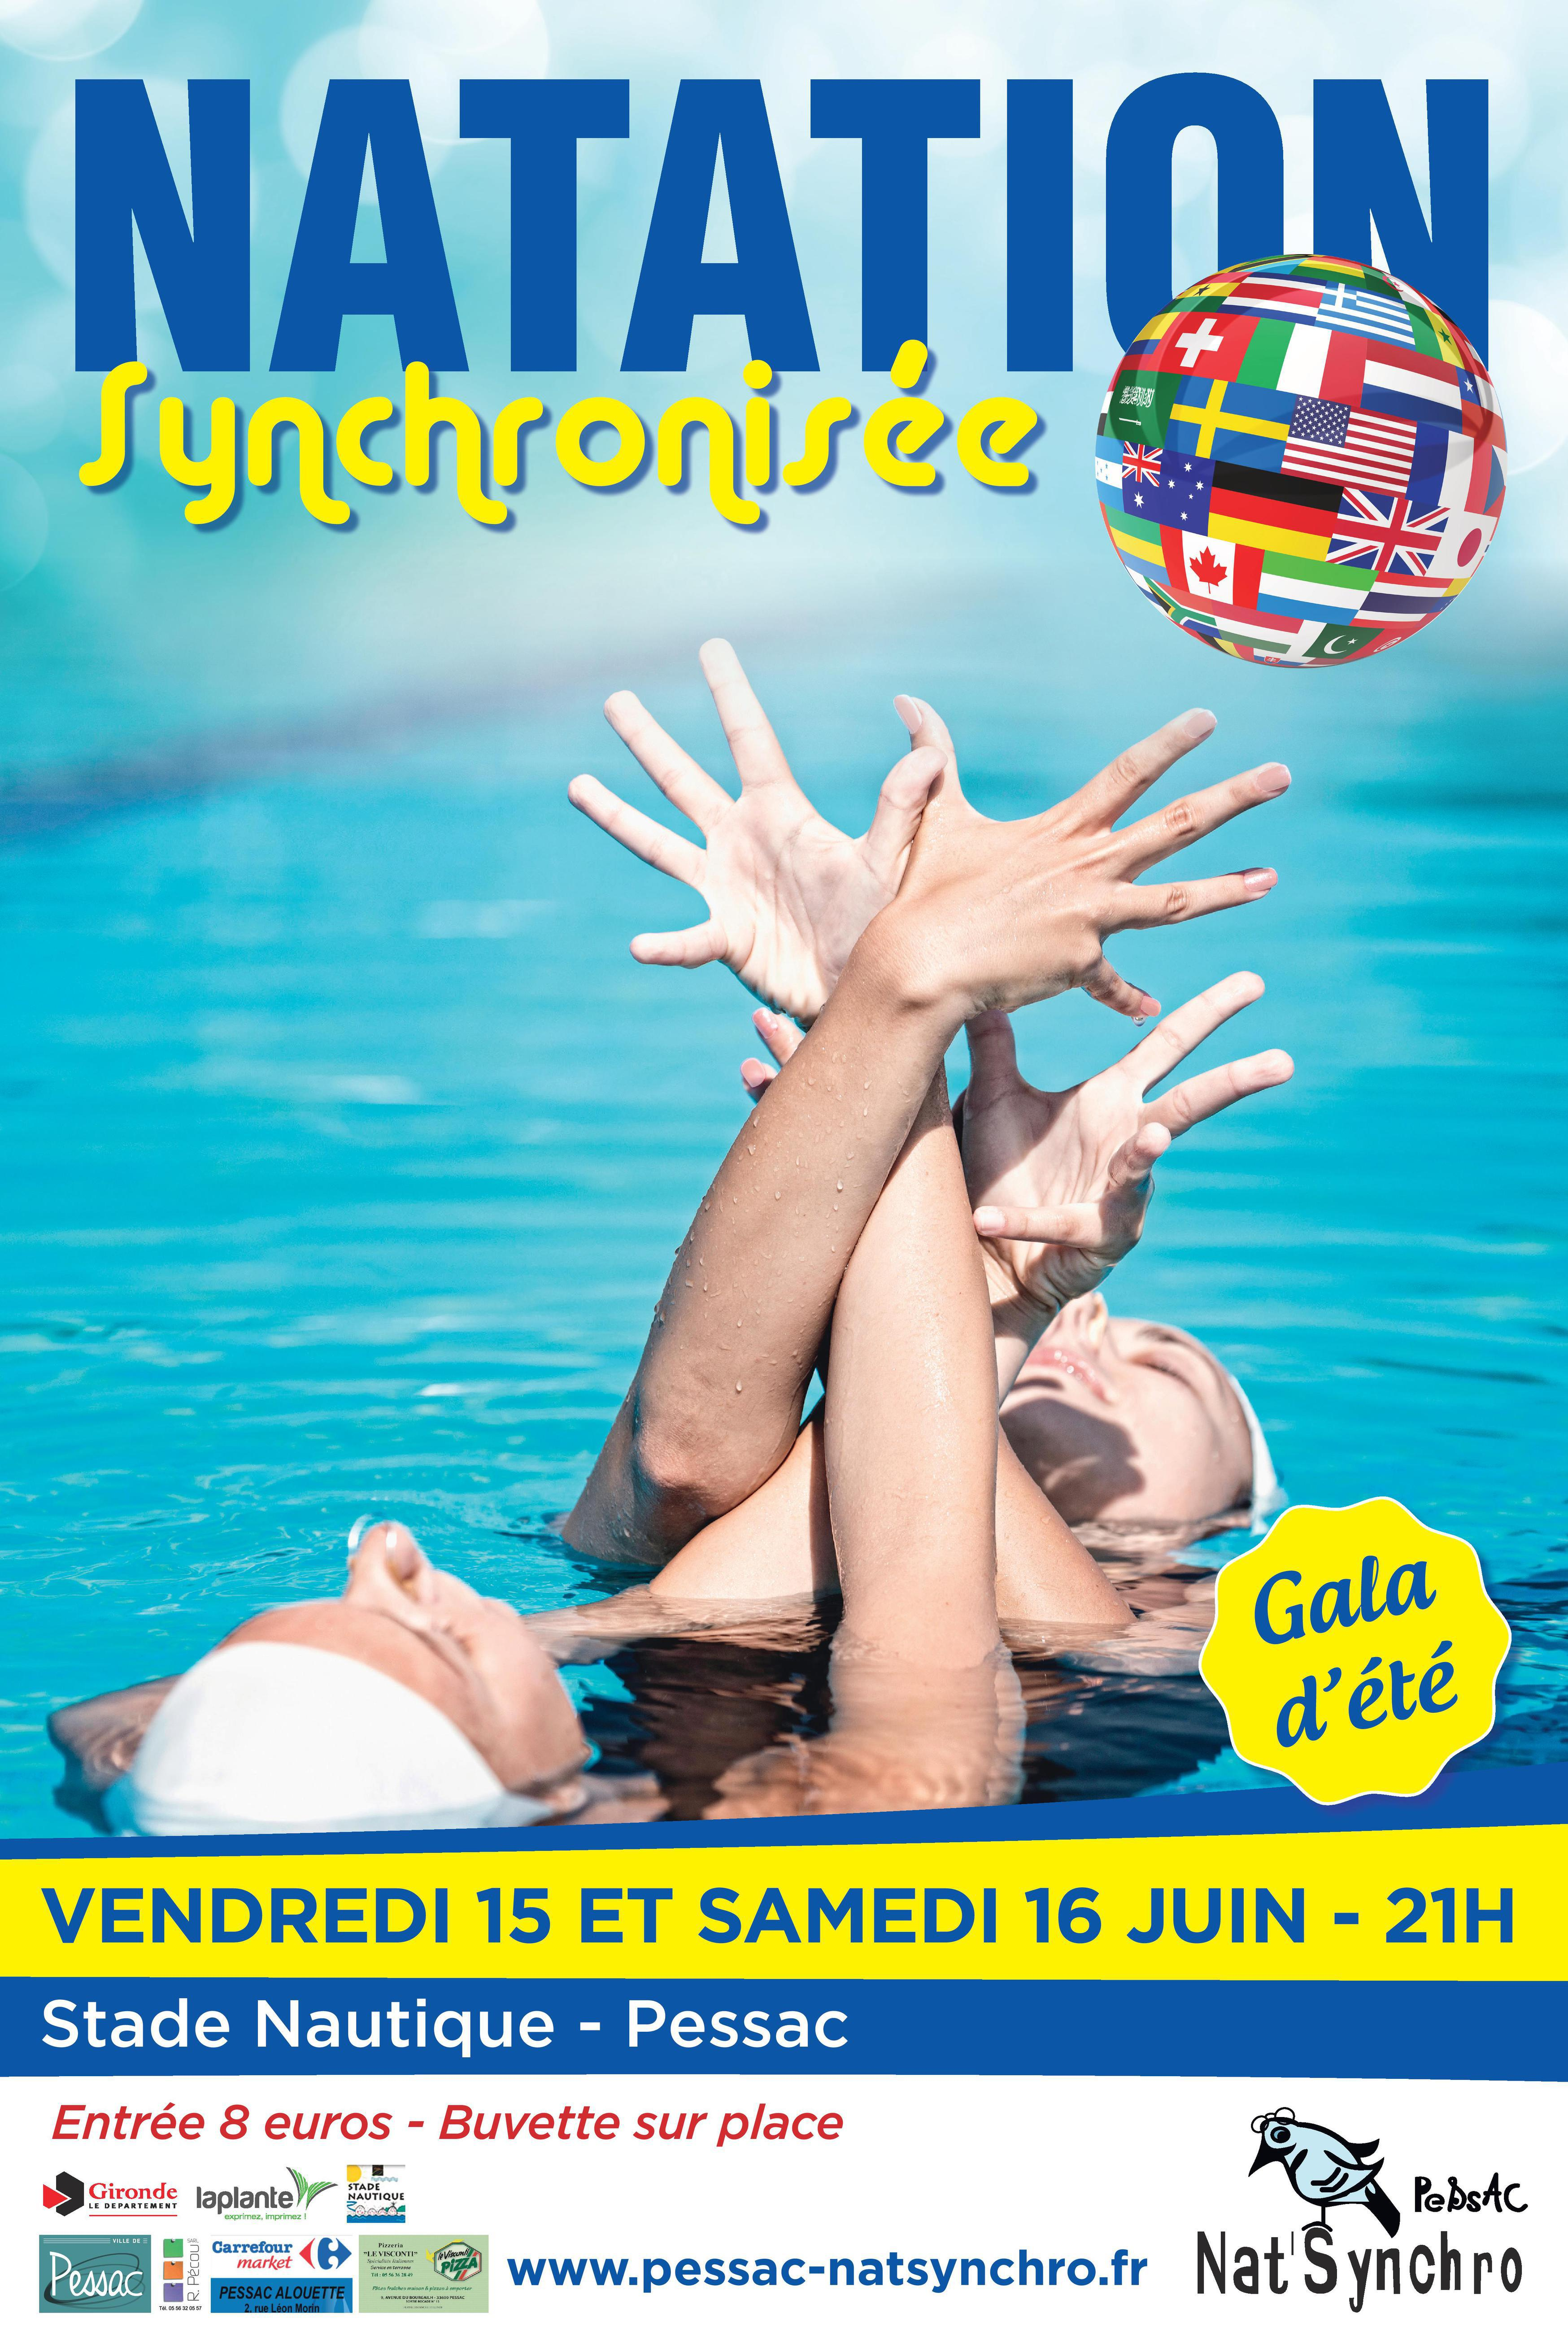 AFFICHE Natation Synchronisee Juin2018 OK page 001 ConvertImage